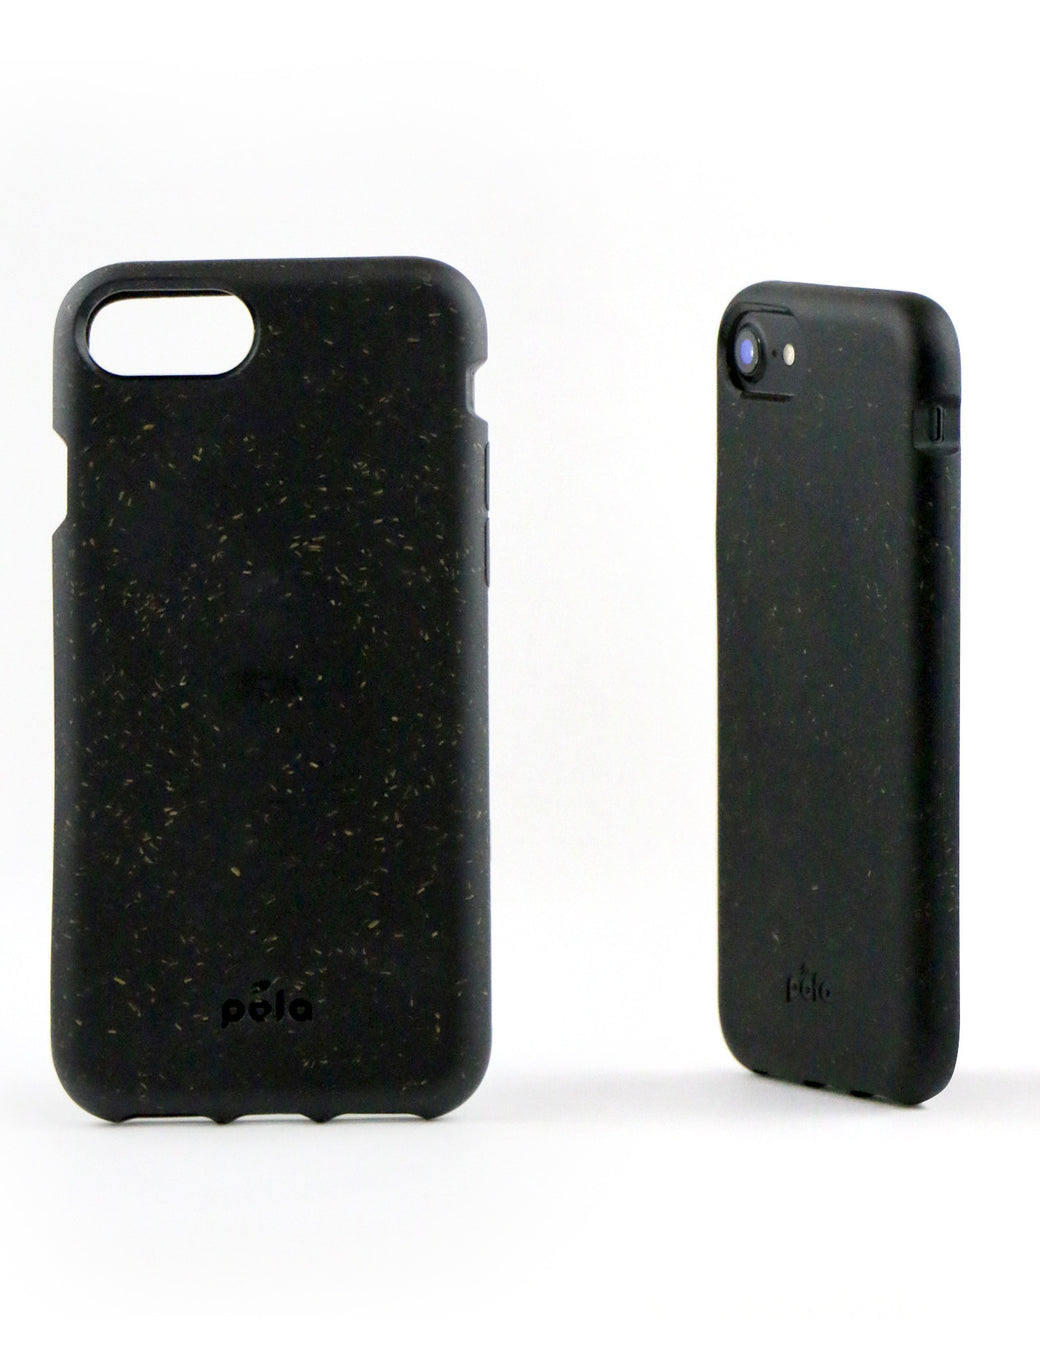 Black Eco-Friendly iPhone 7 & iPhone 8 Case / iPhone Cover